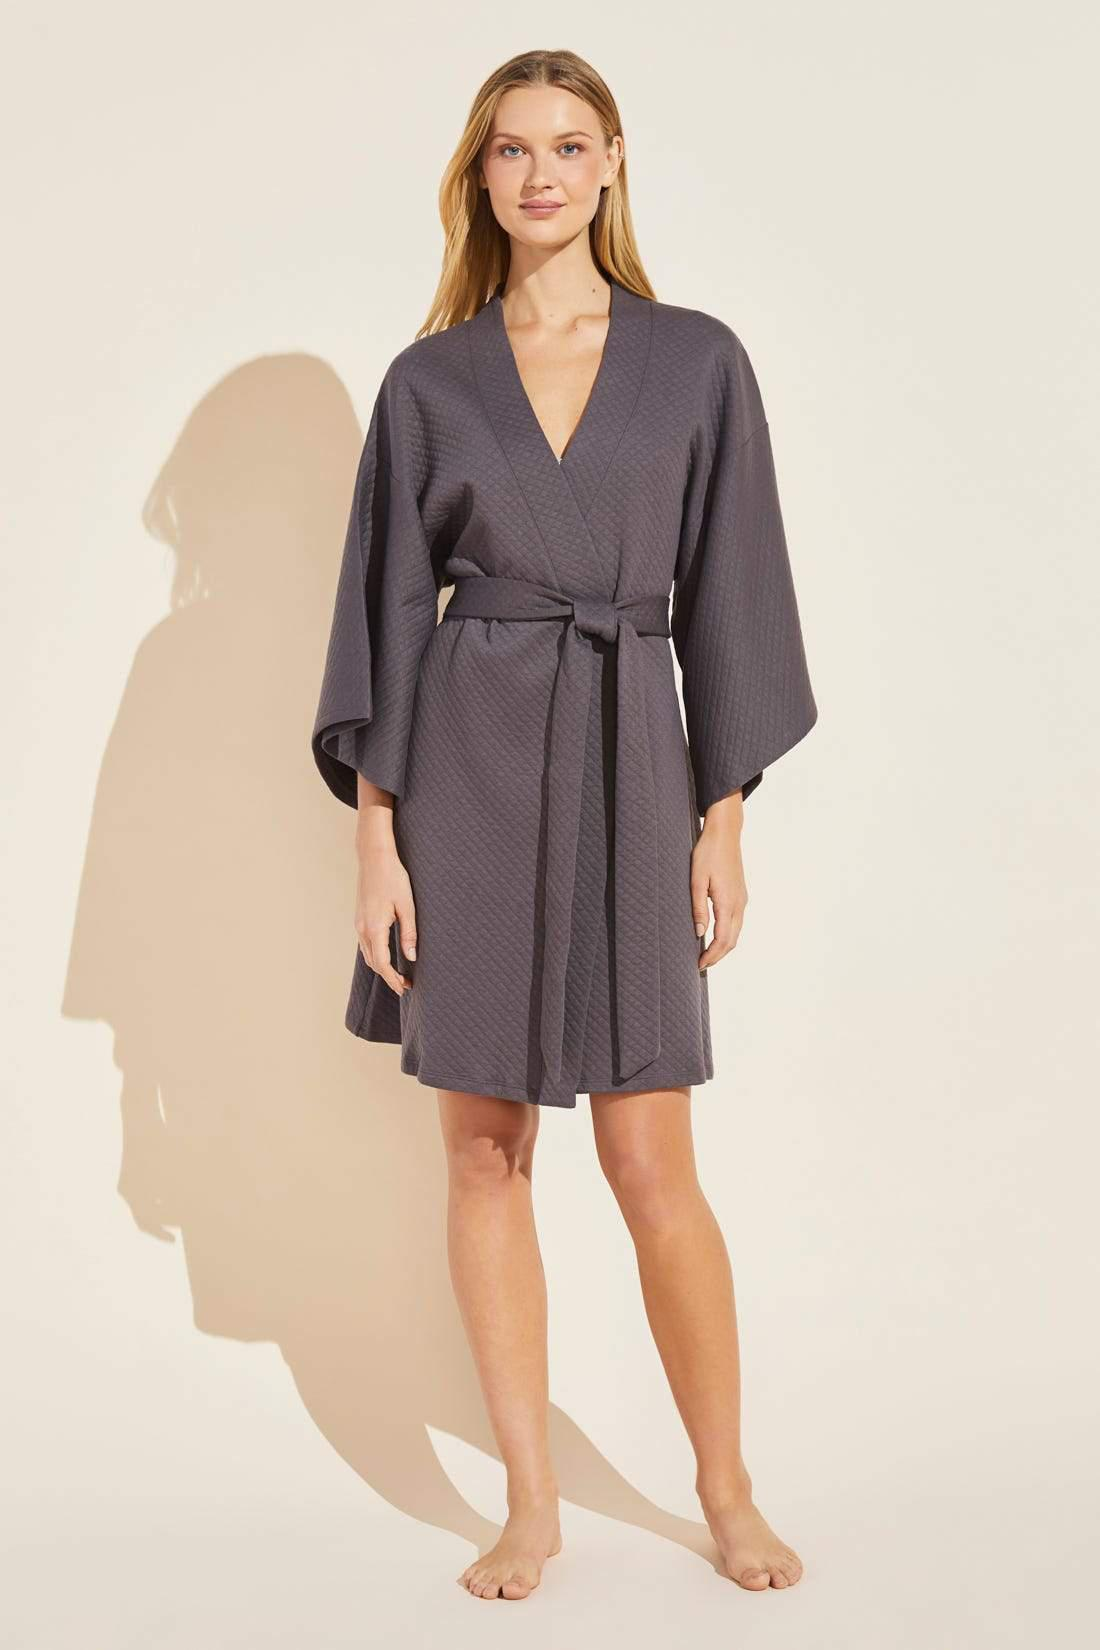 Zen Quilted Cotton Spa Robe - Pebble